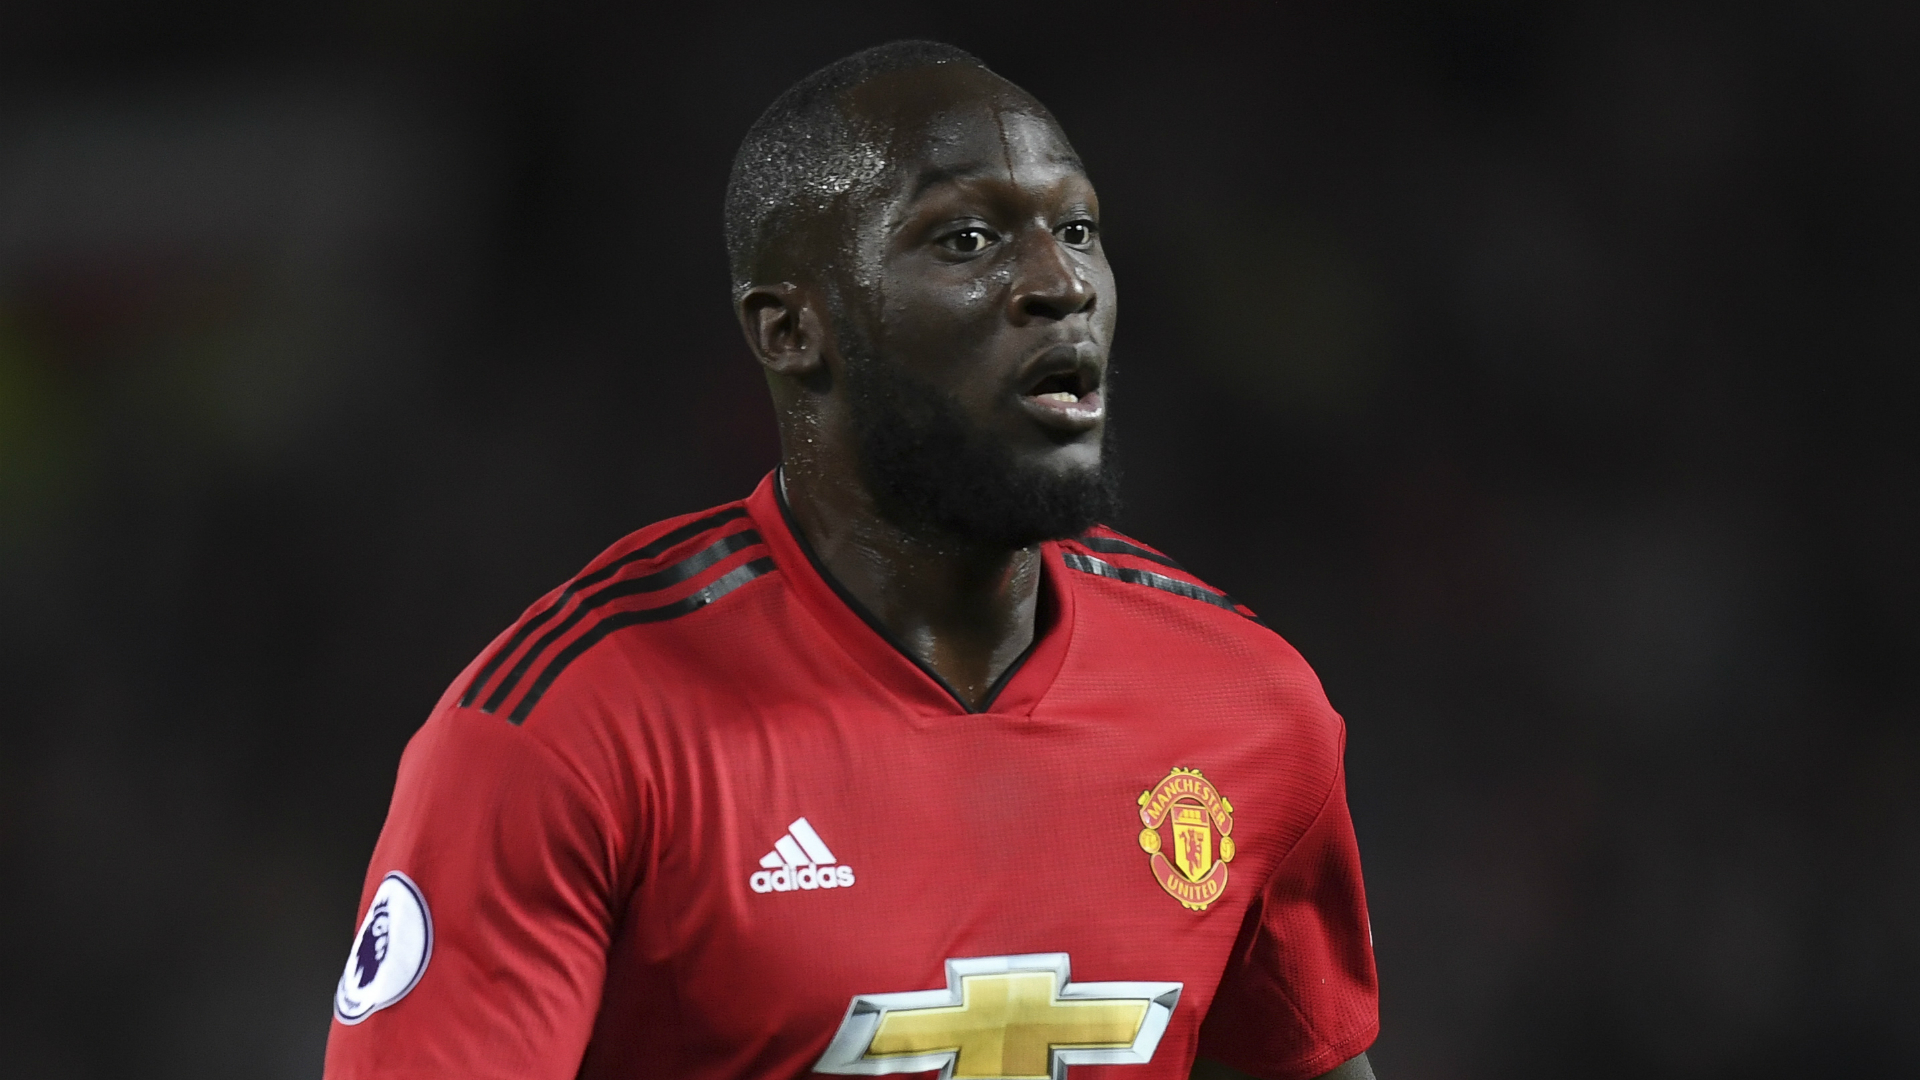 Inter signing Lukaku 'my will and hope', says Conte